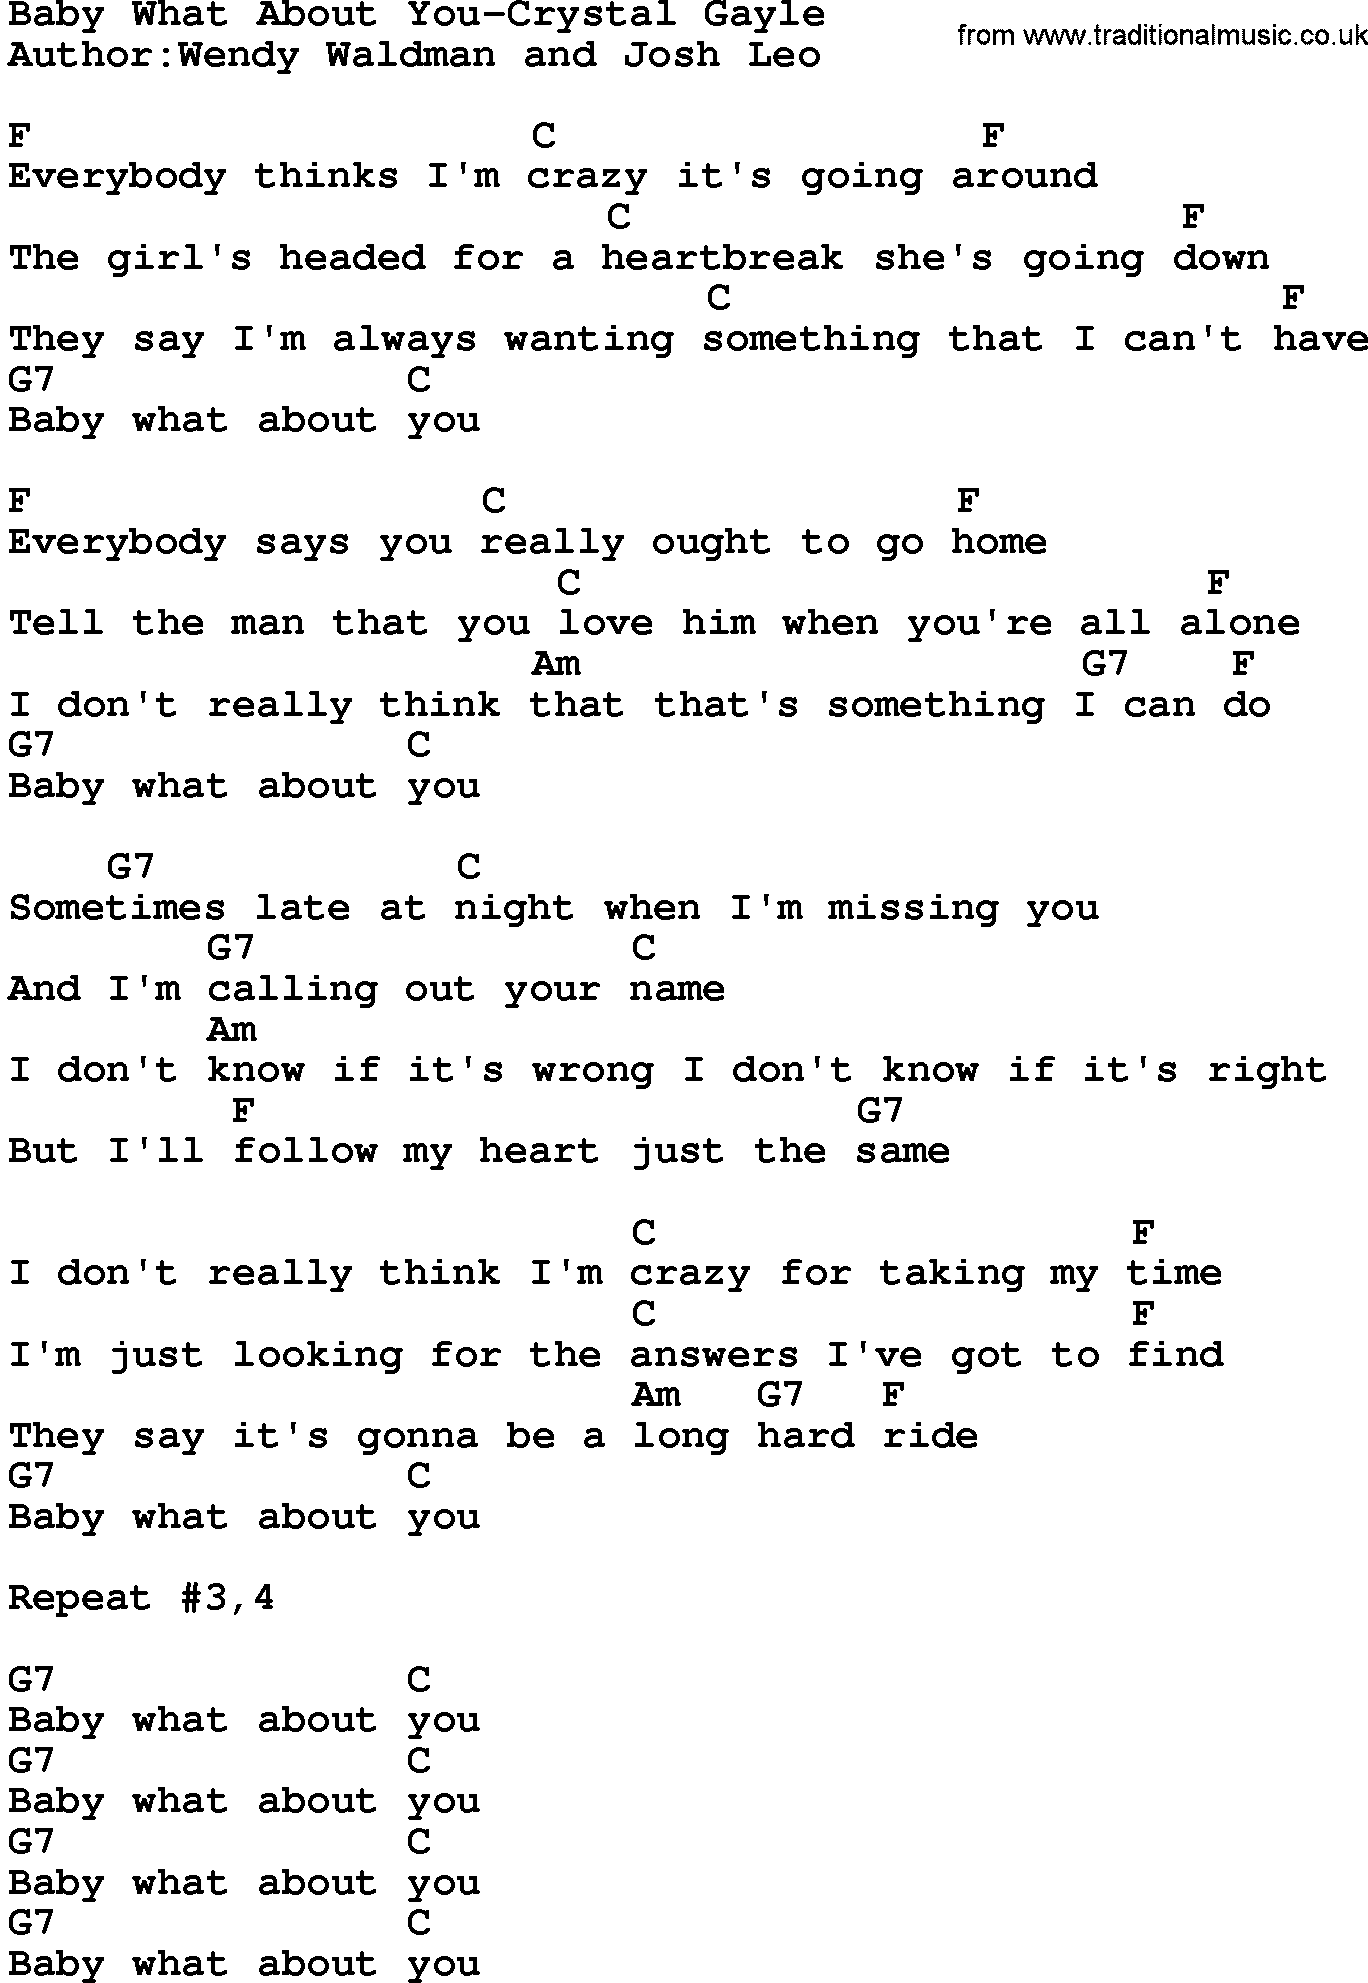 Country MusicBaby What About You Crystal Gayle Lyrics and Chords